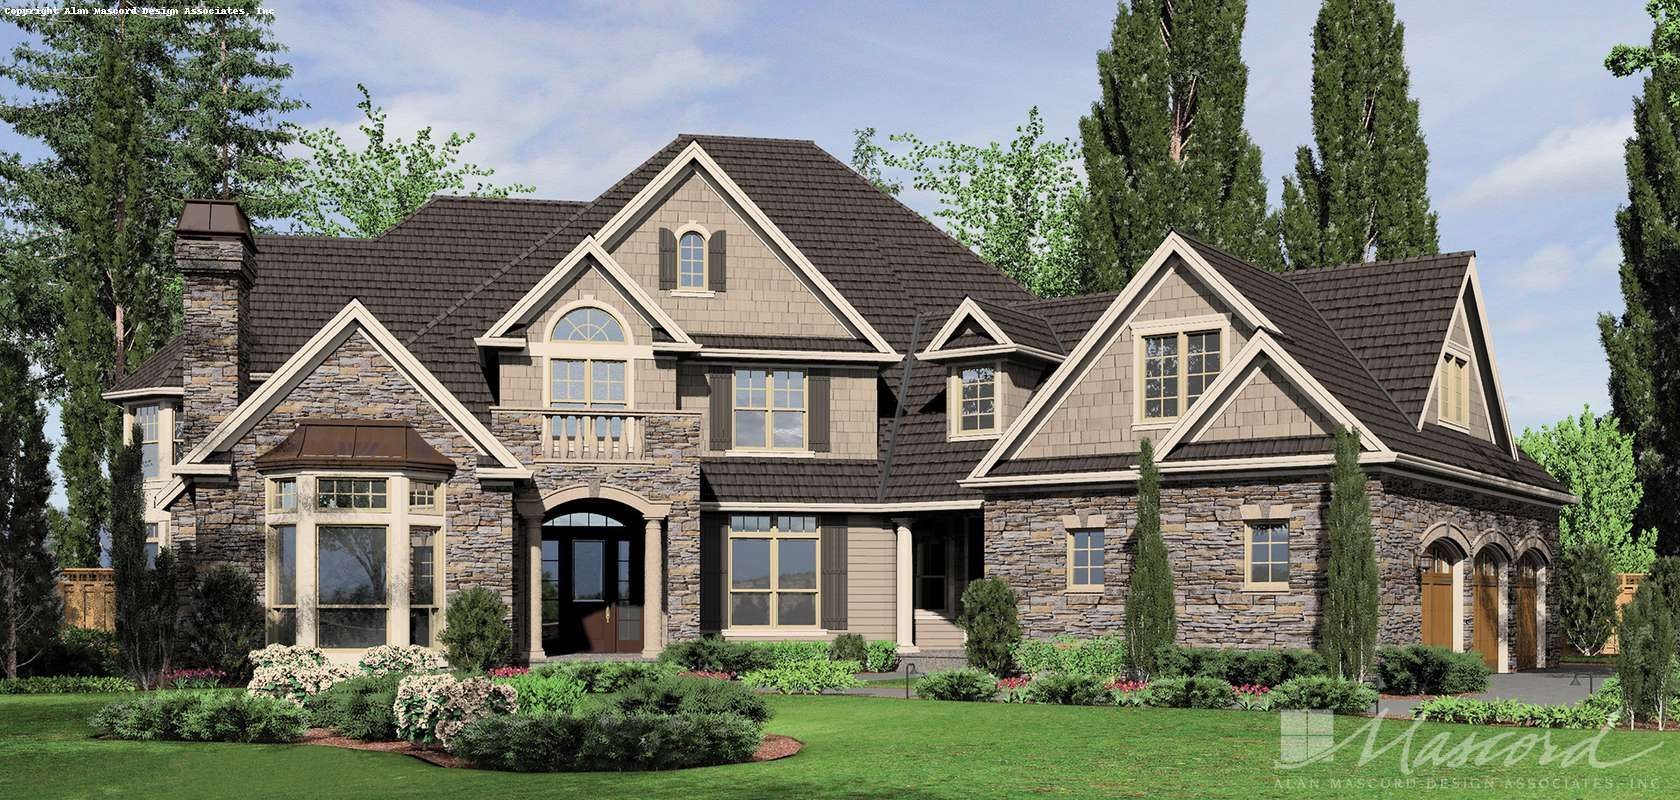 Mascord House Plan 2449: The Hallsville